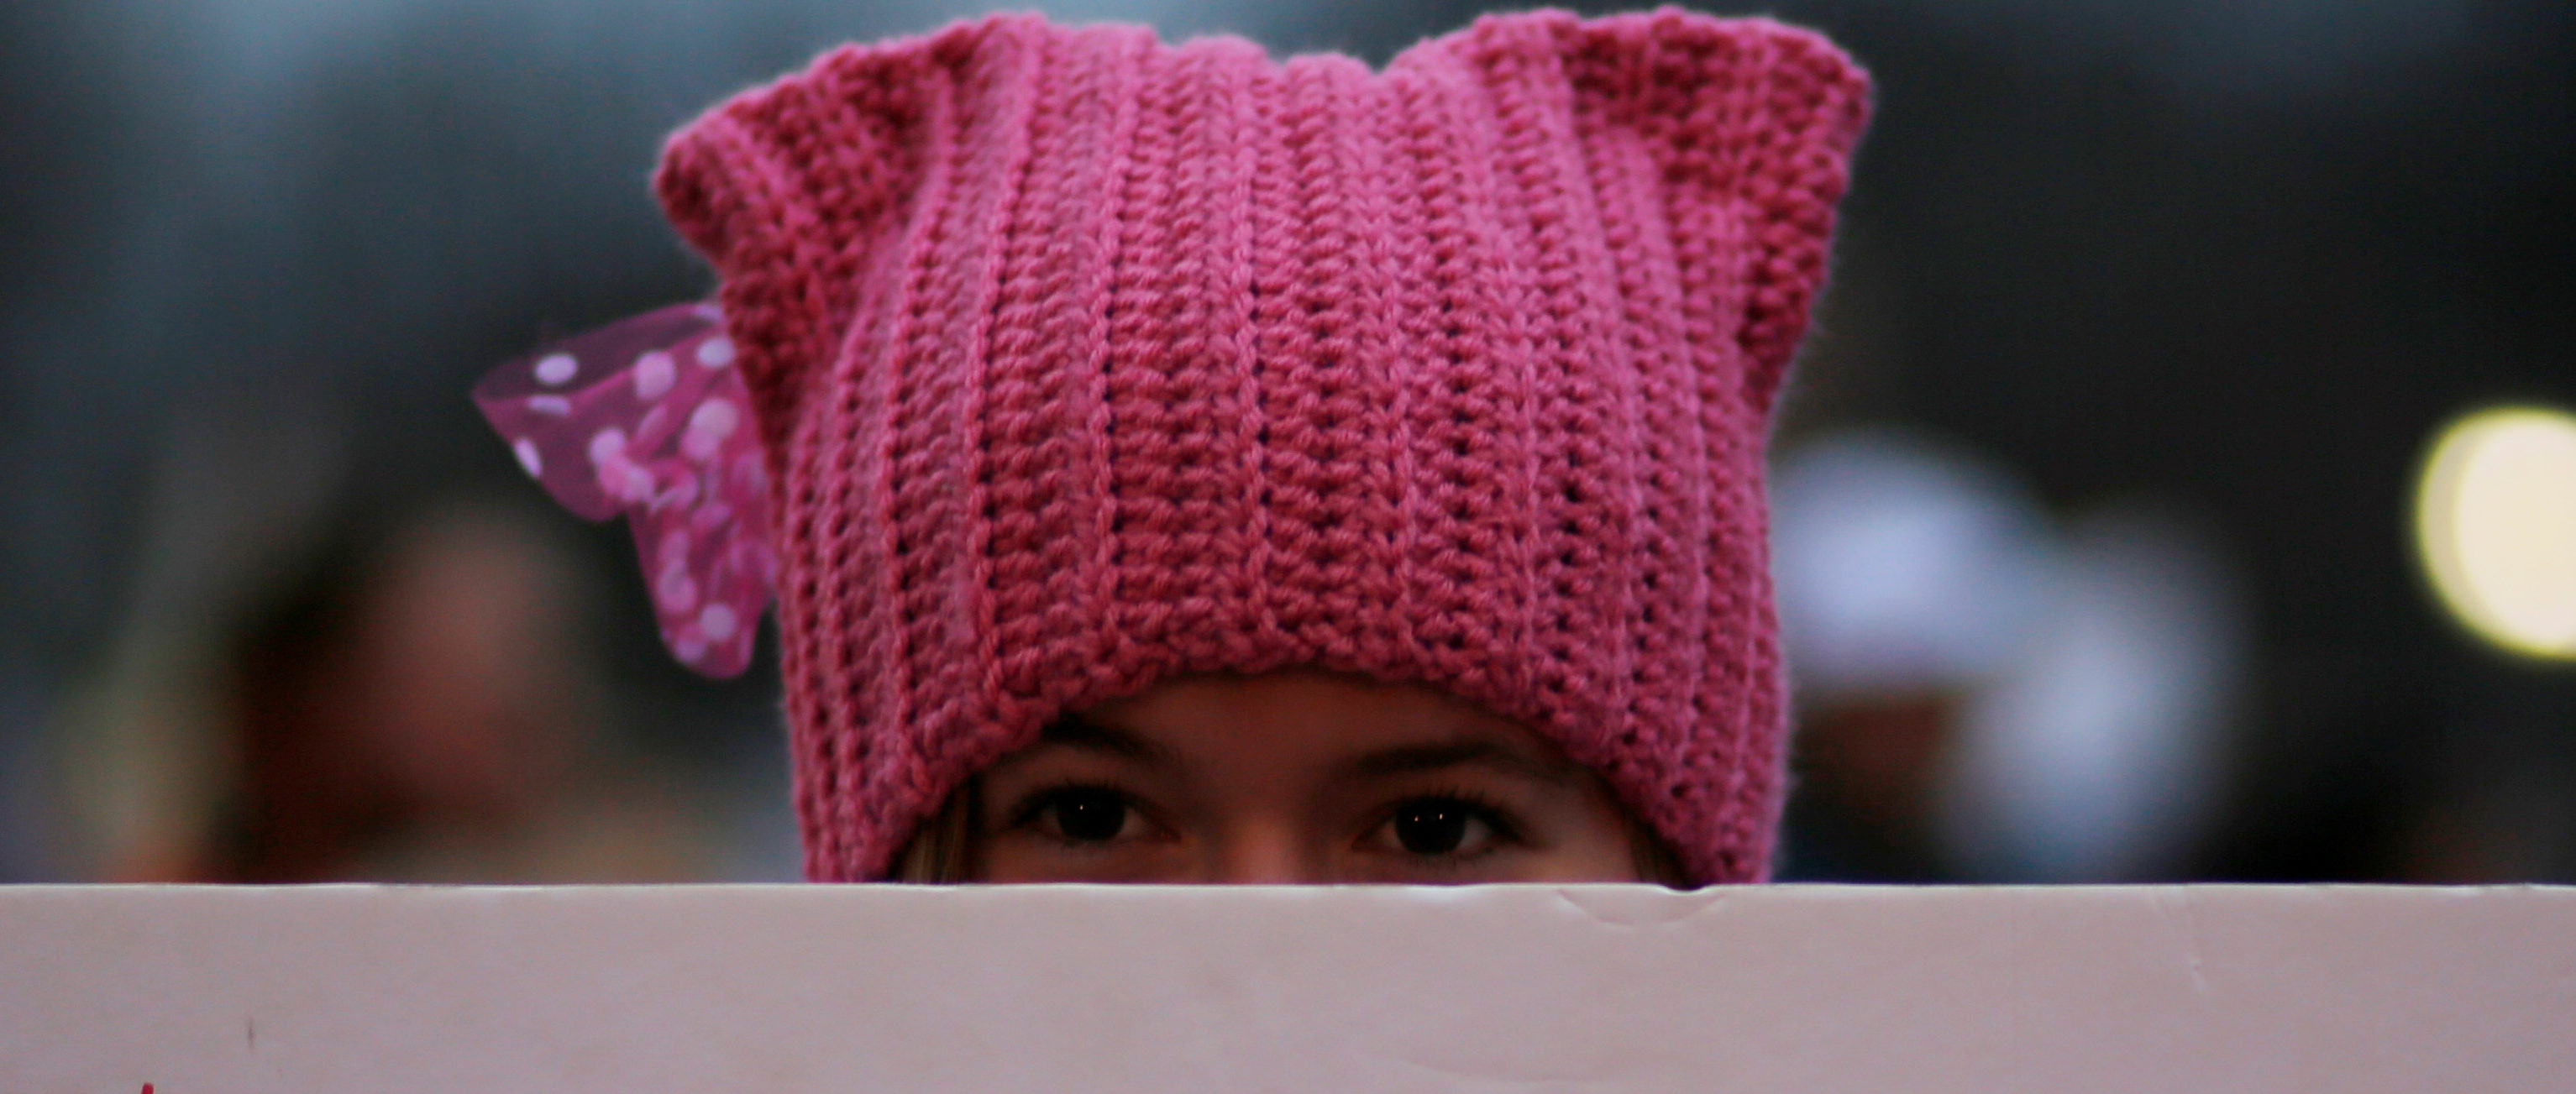 A woman wearing pink pussy protest hat poses for a photograph during the Women's March on Washington, following the inauguration of U.S. President Donald Trump, in Washington, DC, U.S. January 21, 2017. REUTERS/Brian Snyder